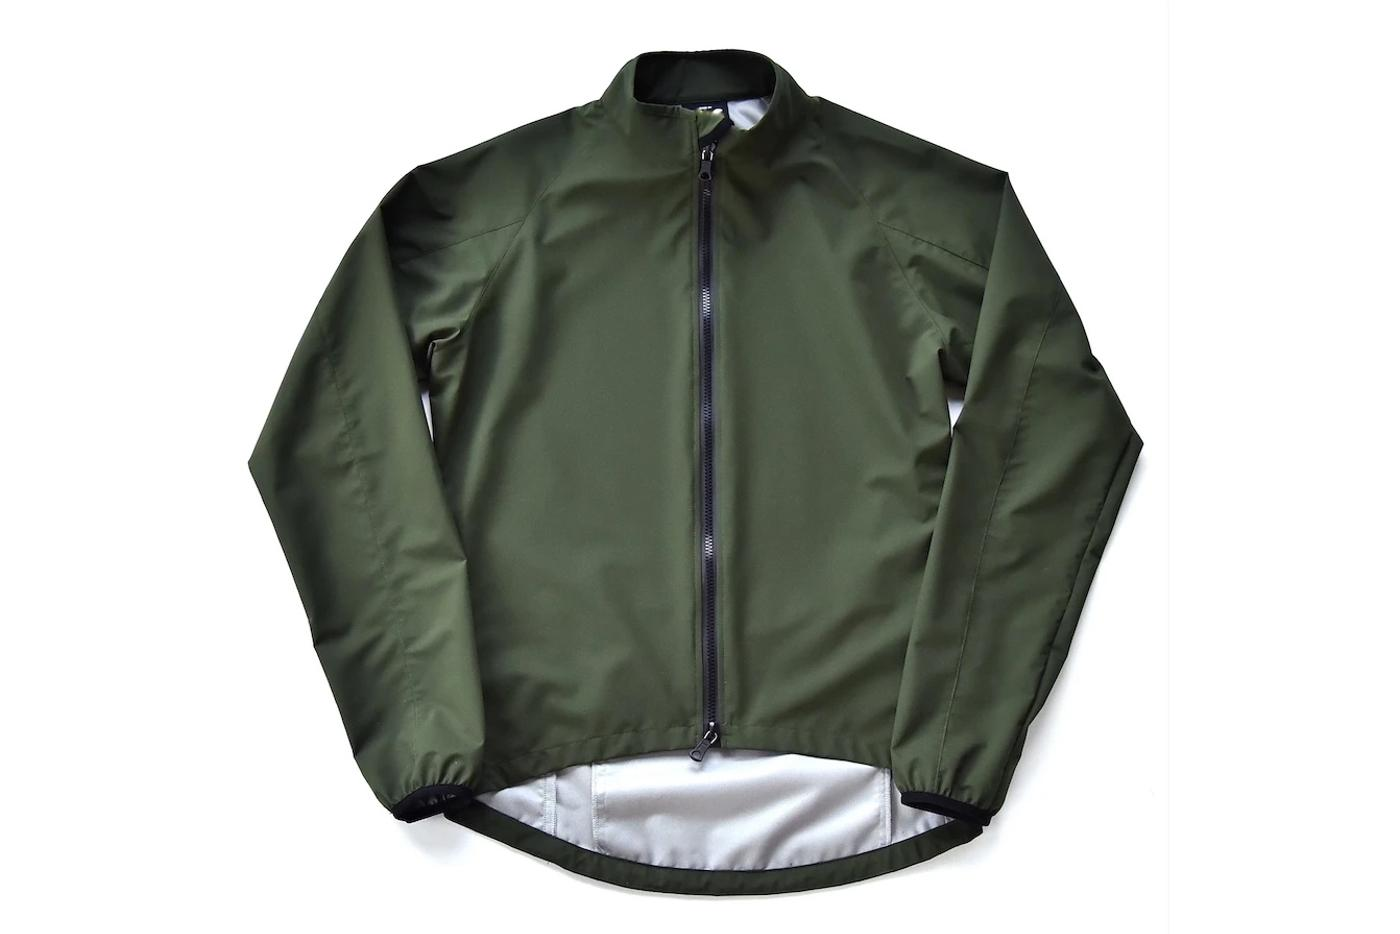 Search and State: S1-J Riding Jacket is Back in Stock